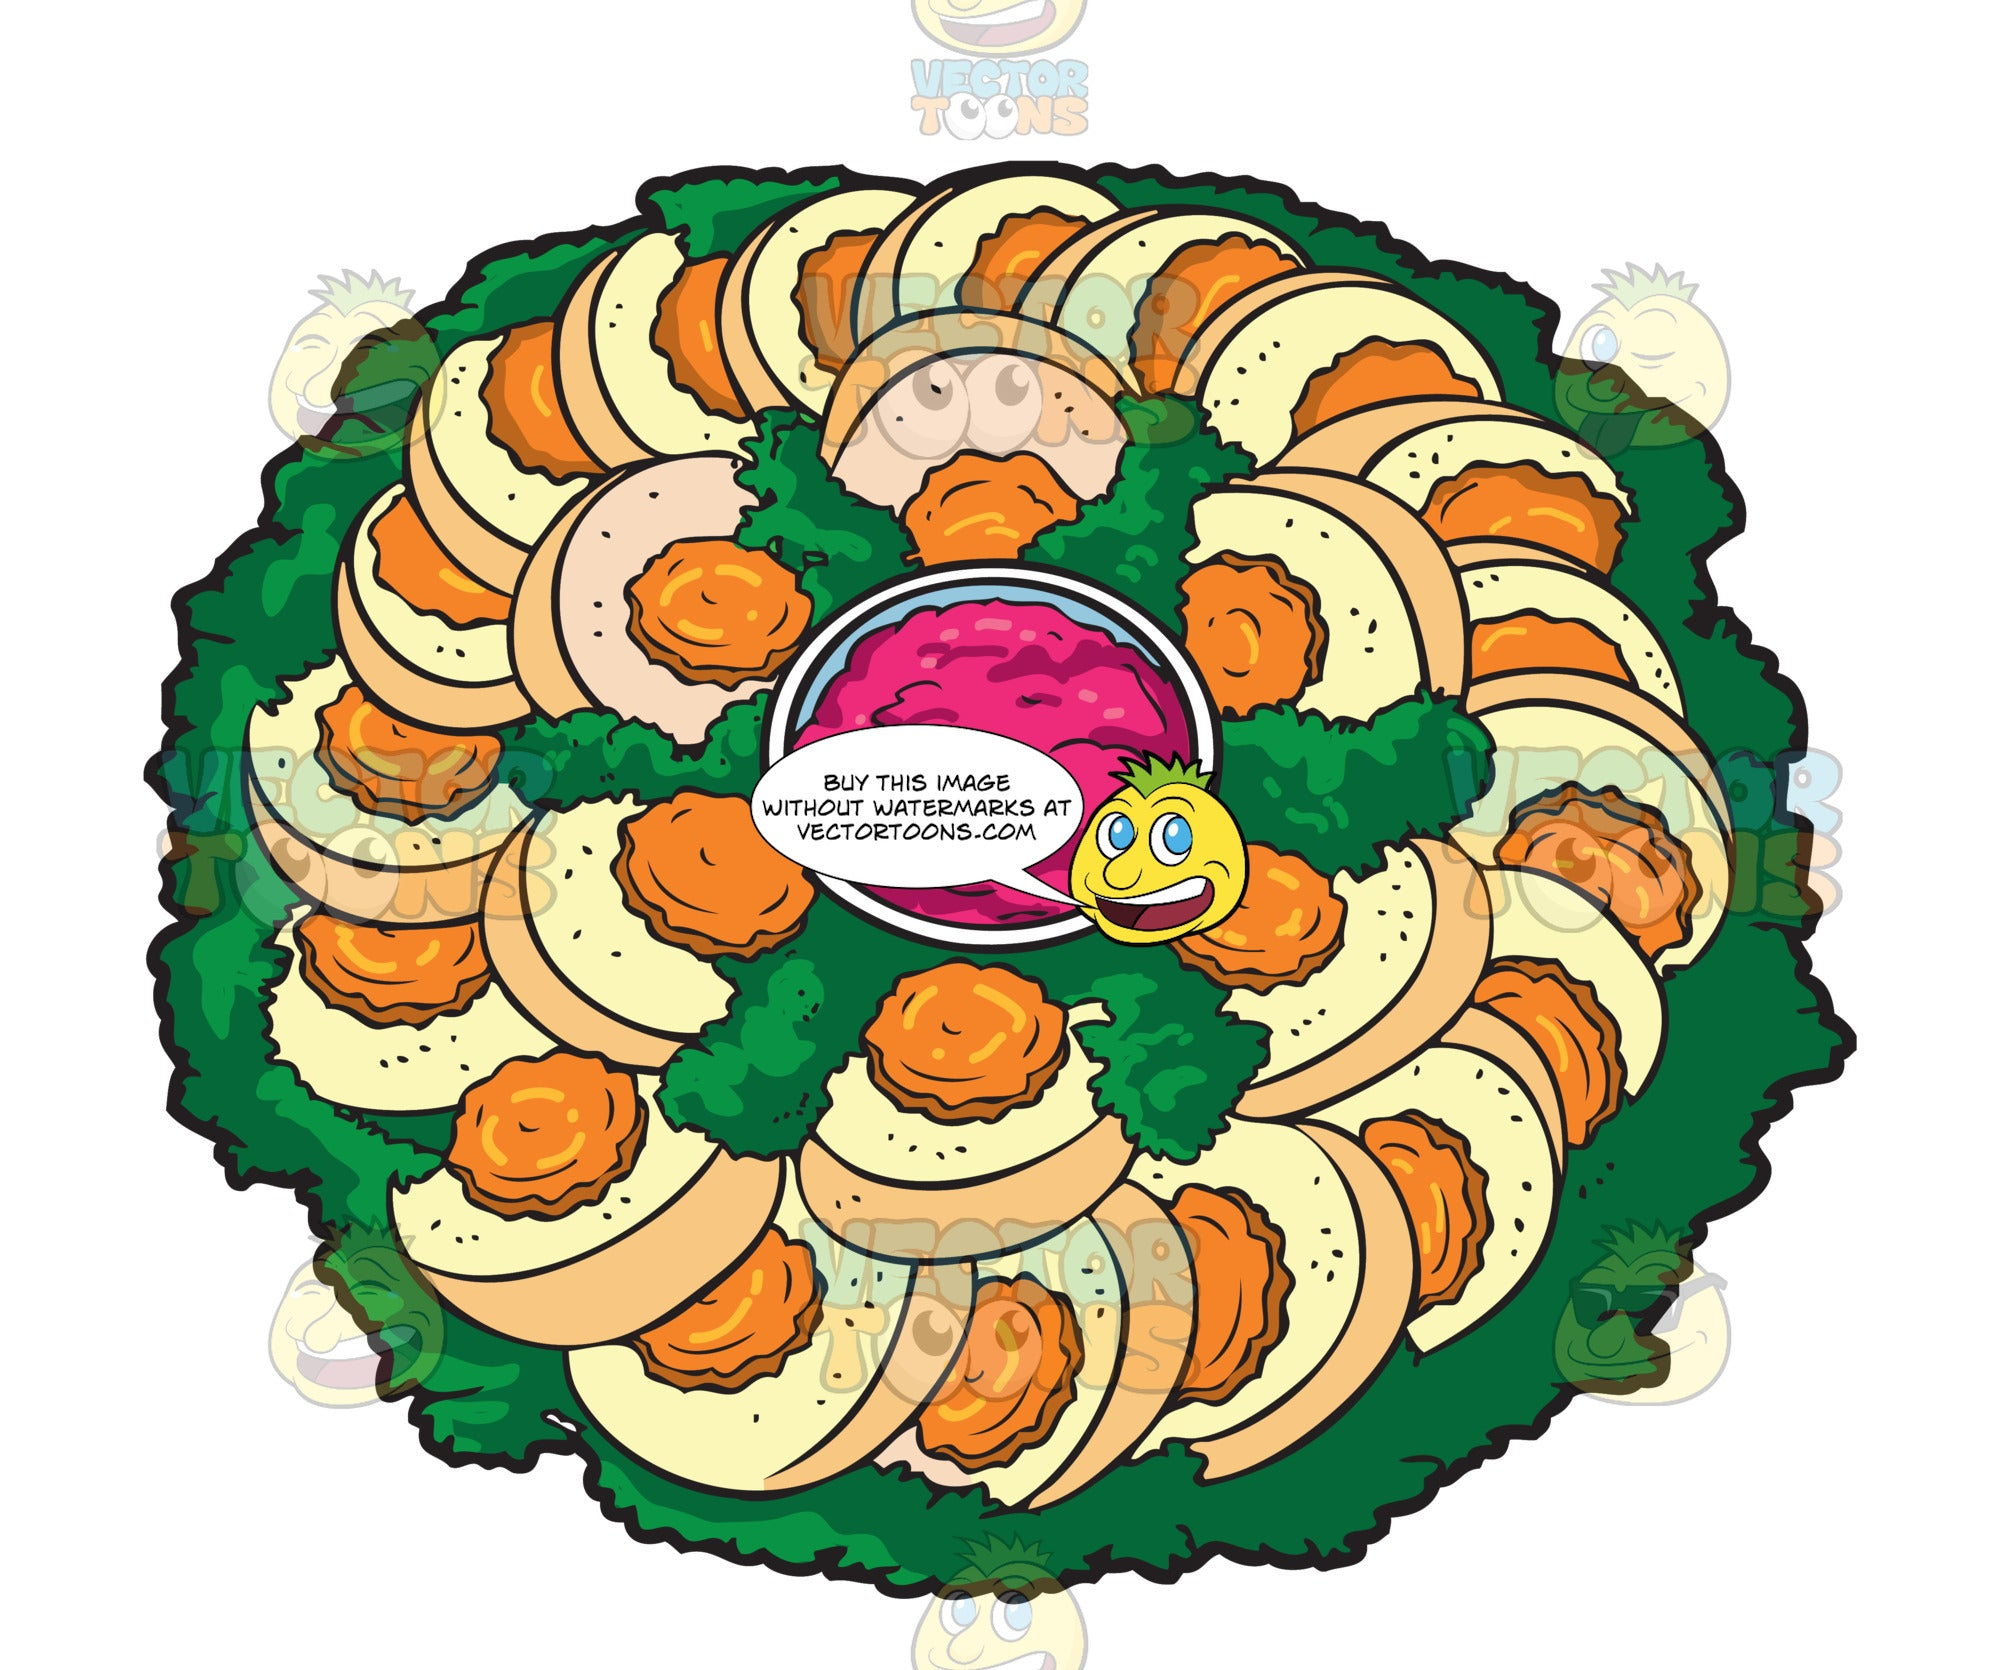 A platter of gefilte fish